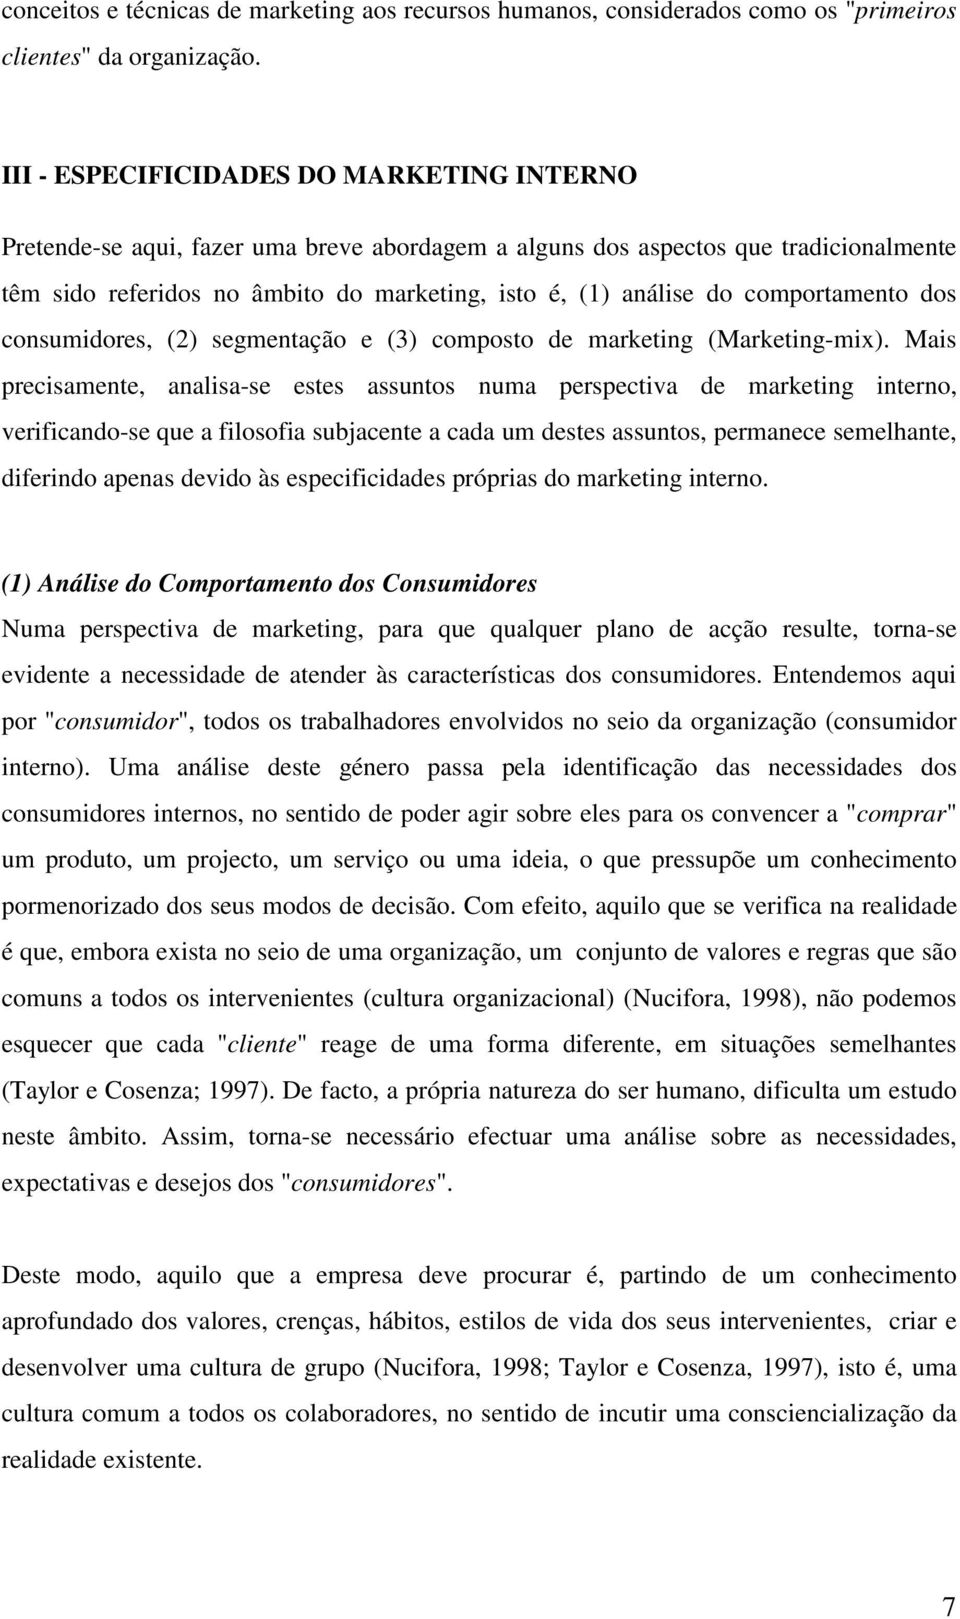 comportamento dos consumidores, (2) segmentação e (3) composto de marketing (Marketing-mix).